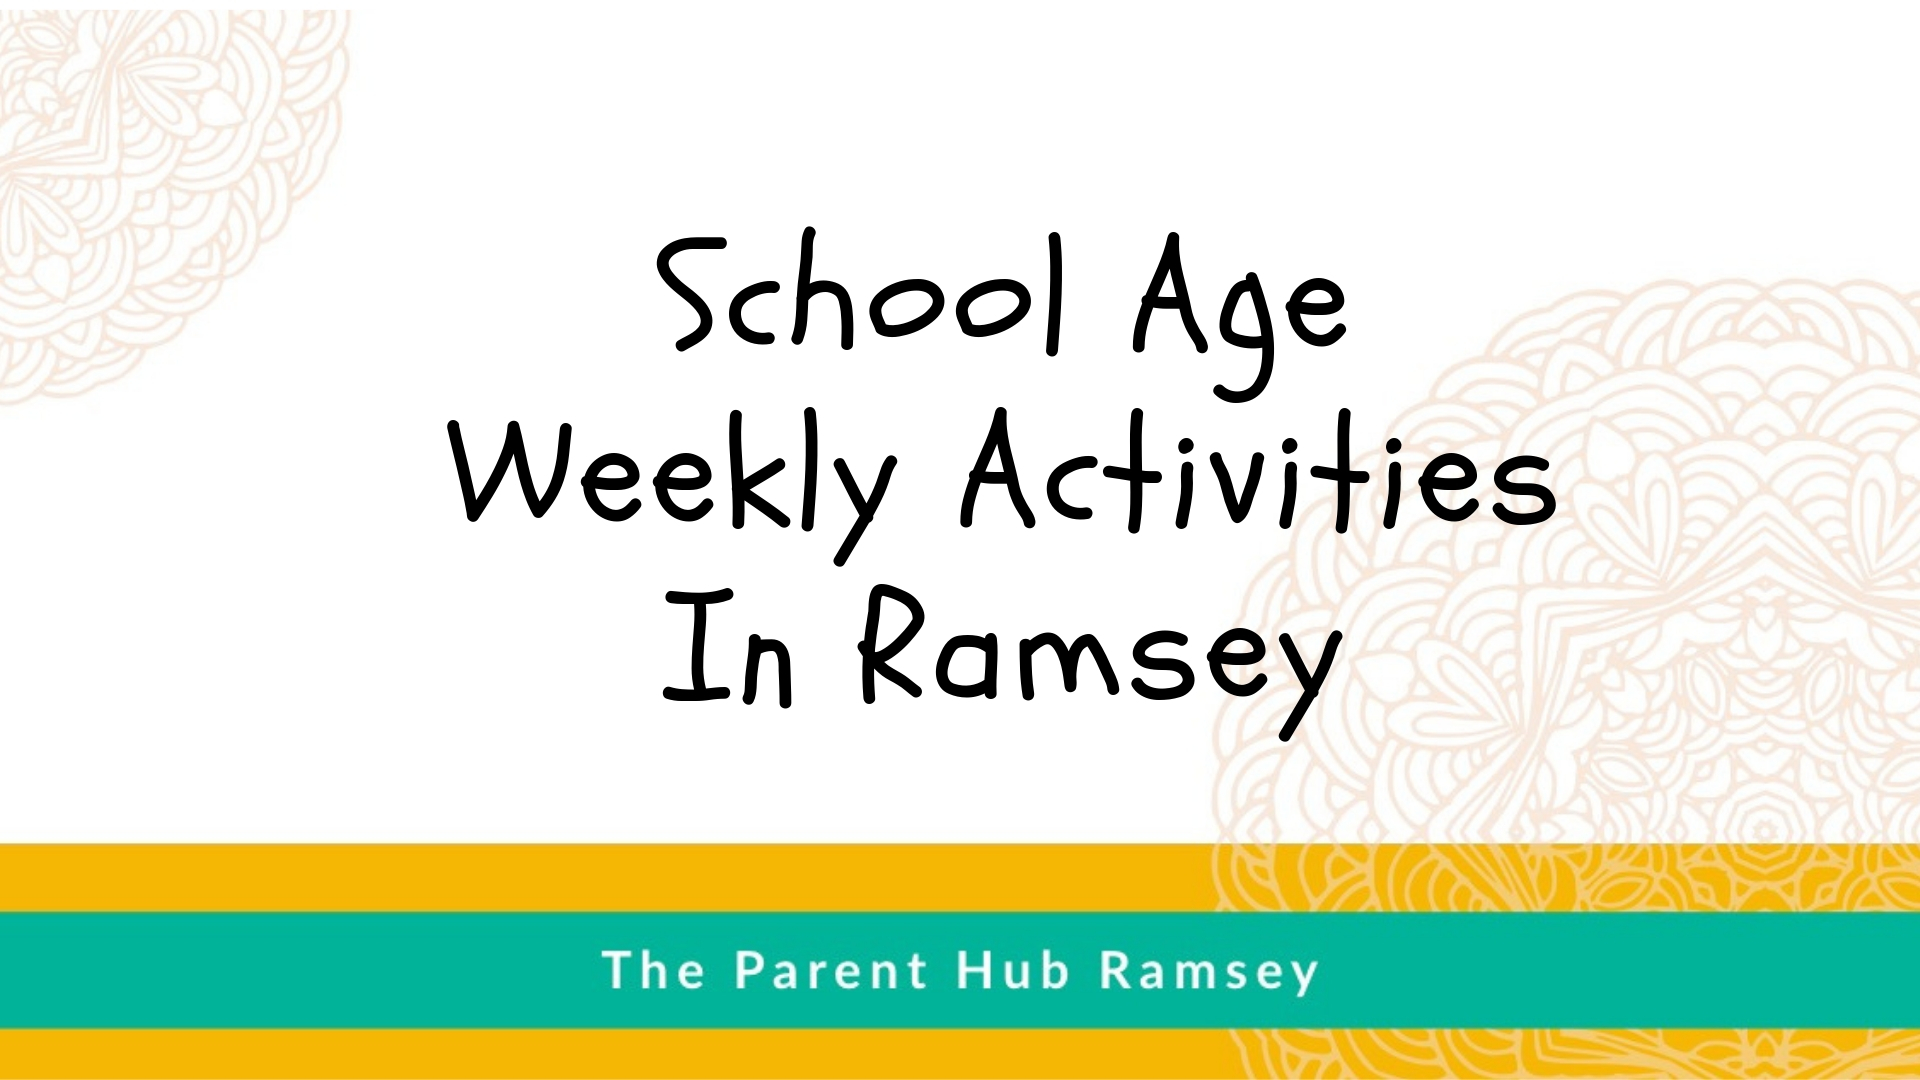 School Age Activities in Ramsey